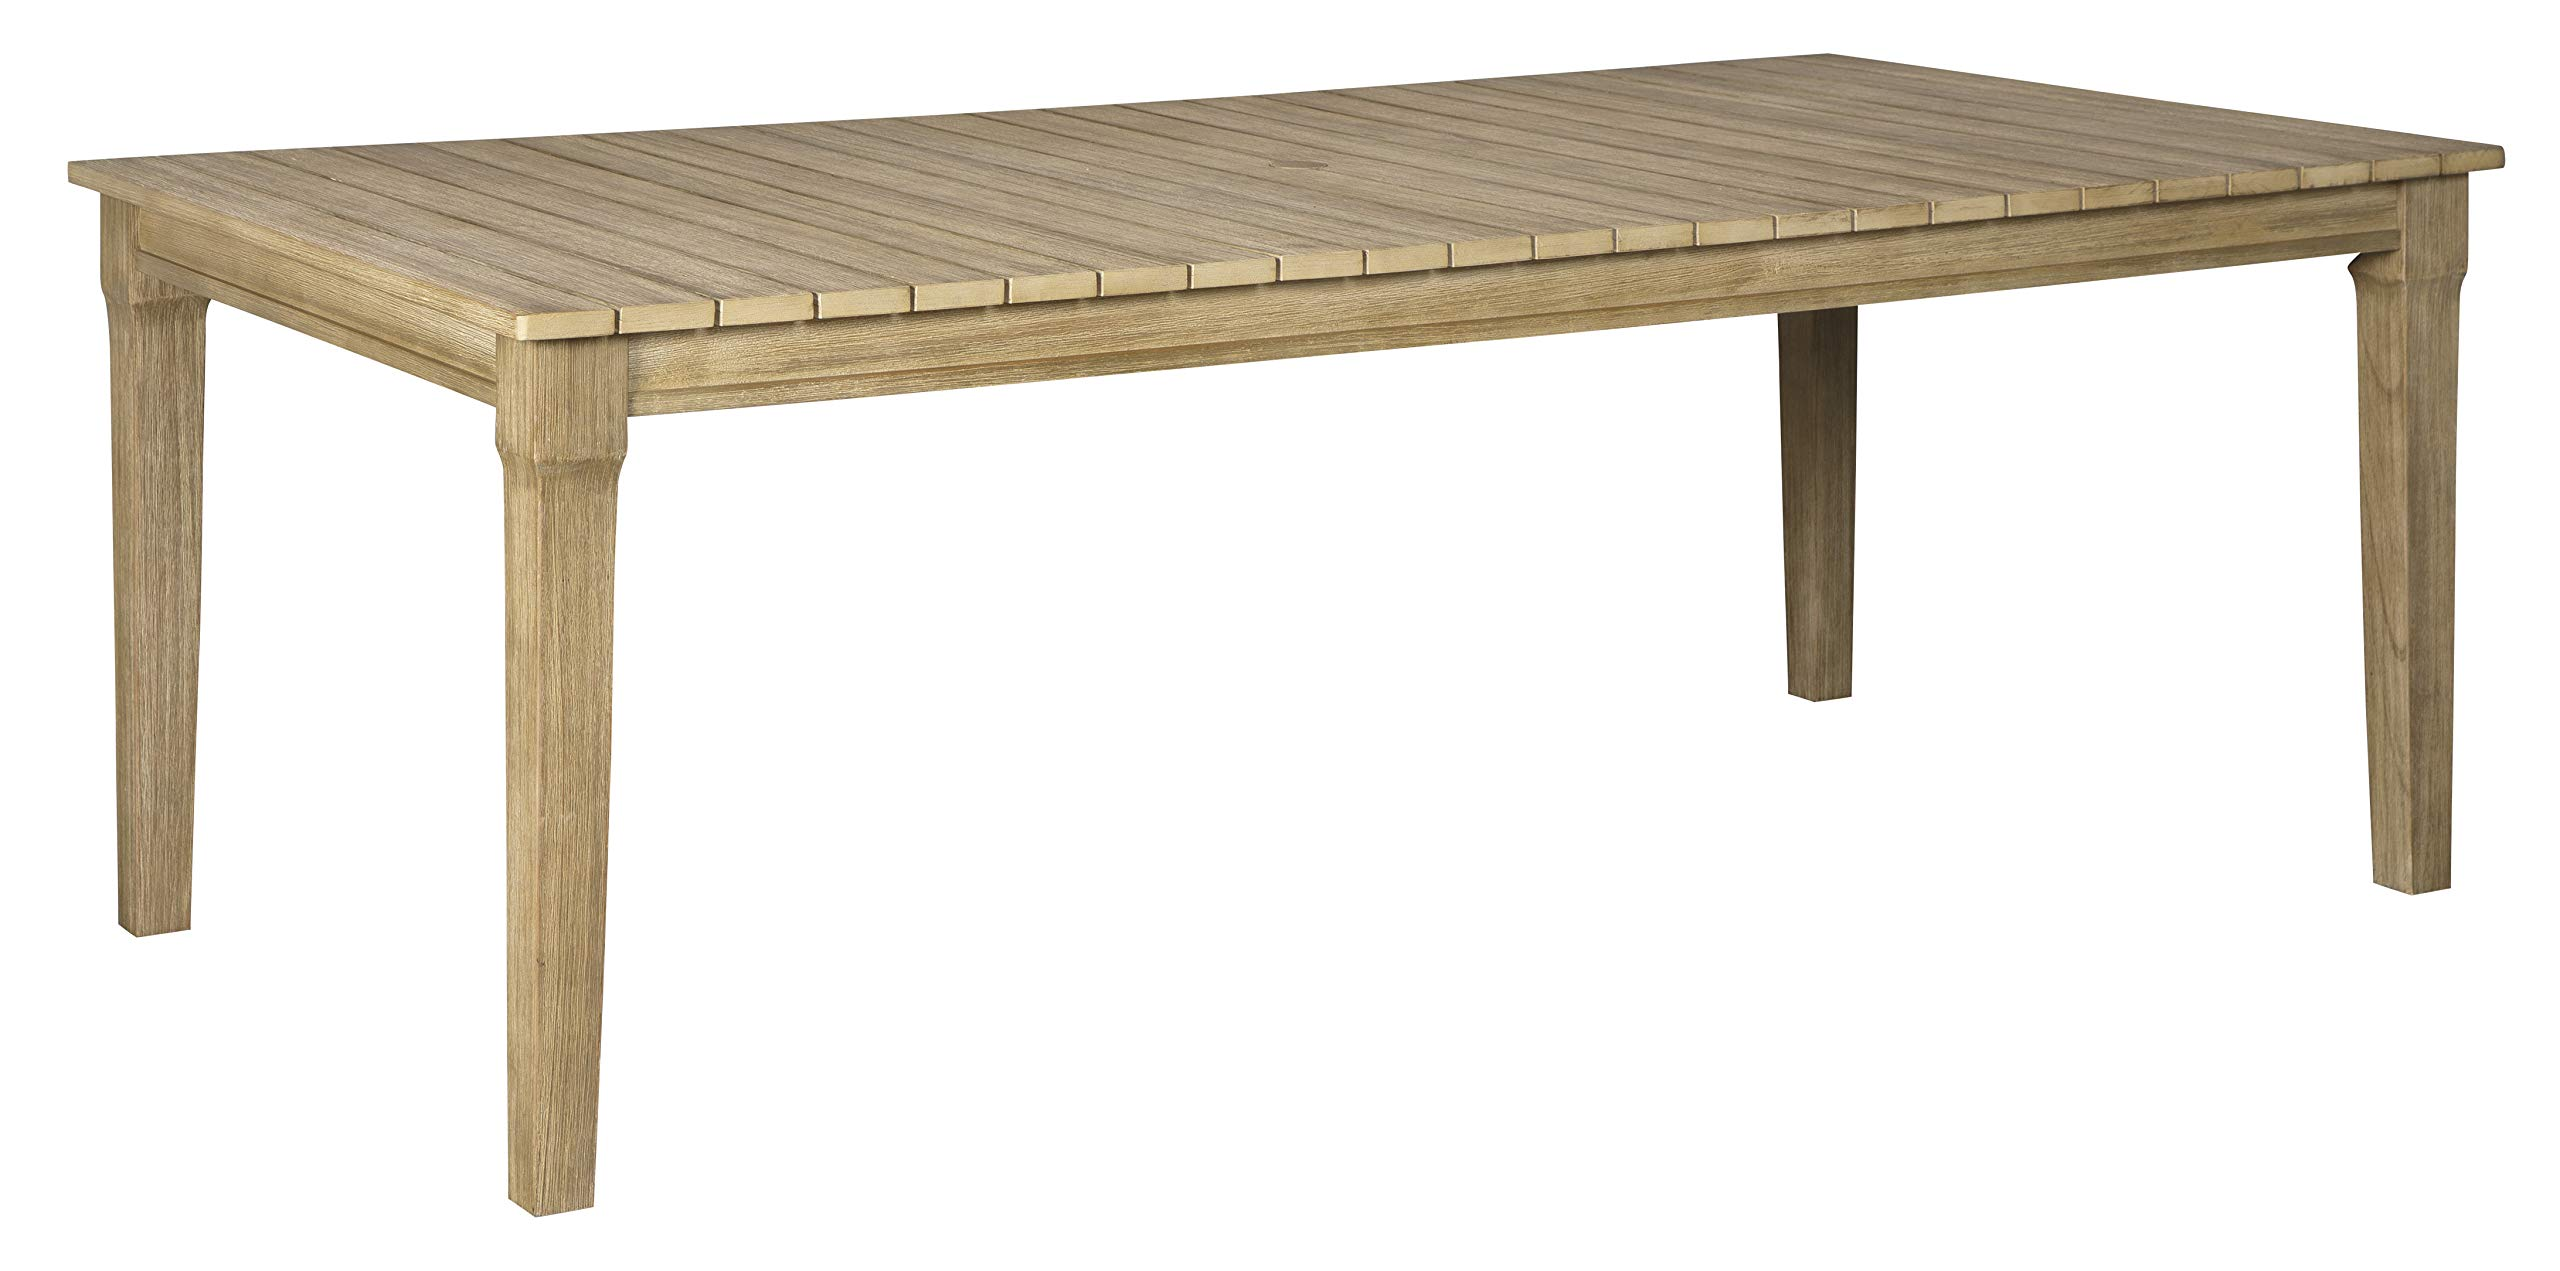 Ashley Furniture Signature Design - Clare View Outdoor Dining Table - Eucalyptus Wood - Seats 6 Beige